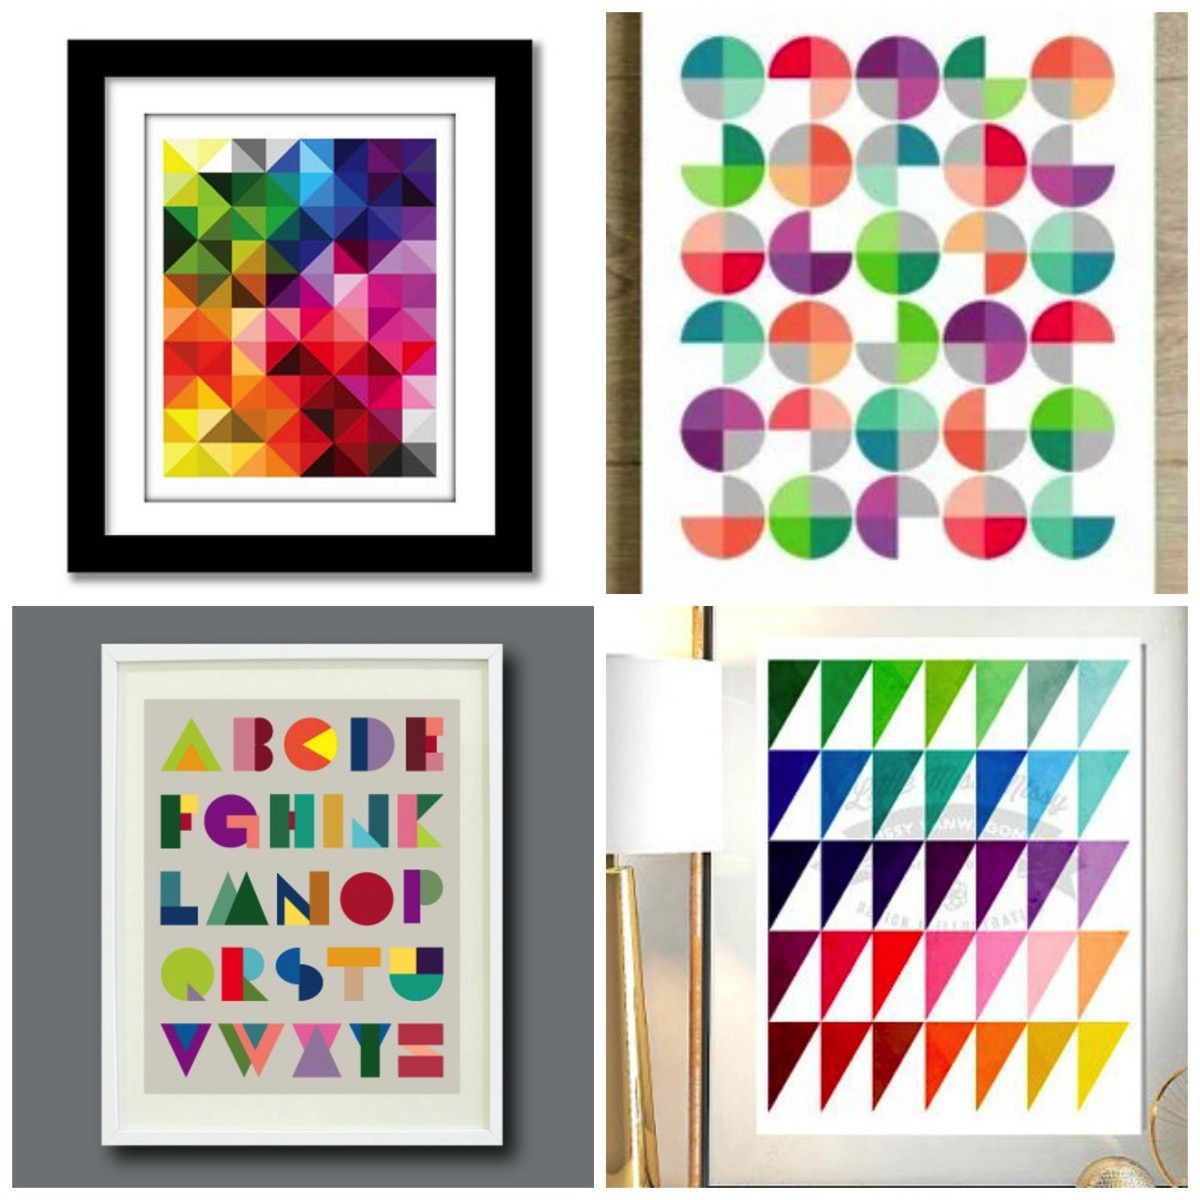 Colorful unique bold abstract geometric artwork from etsy for home decor